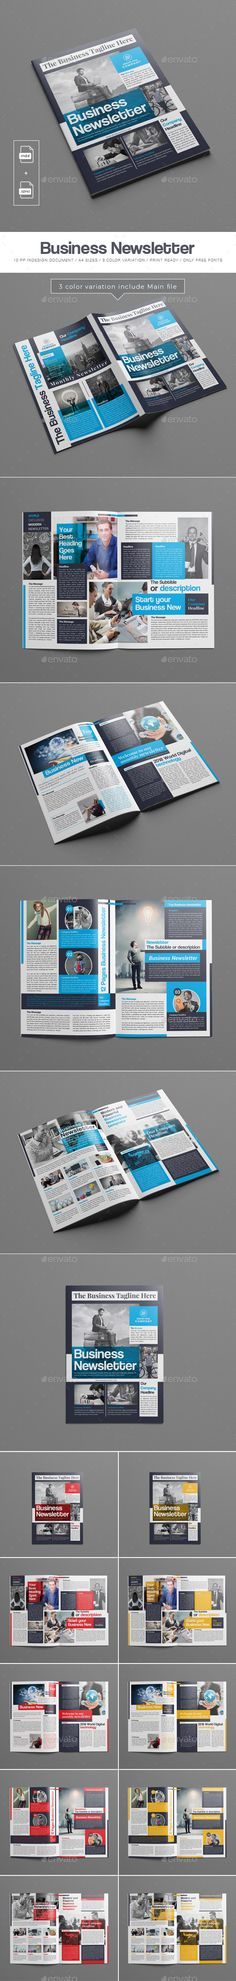 Newsletter Template Newsletter templates, Business and Print - company newsletter template free